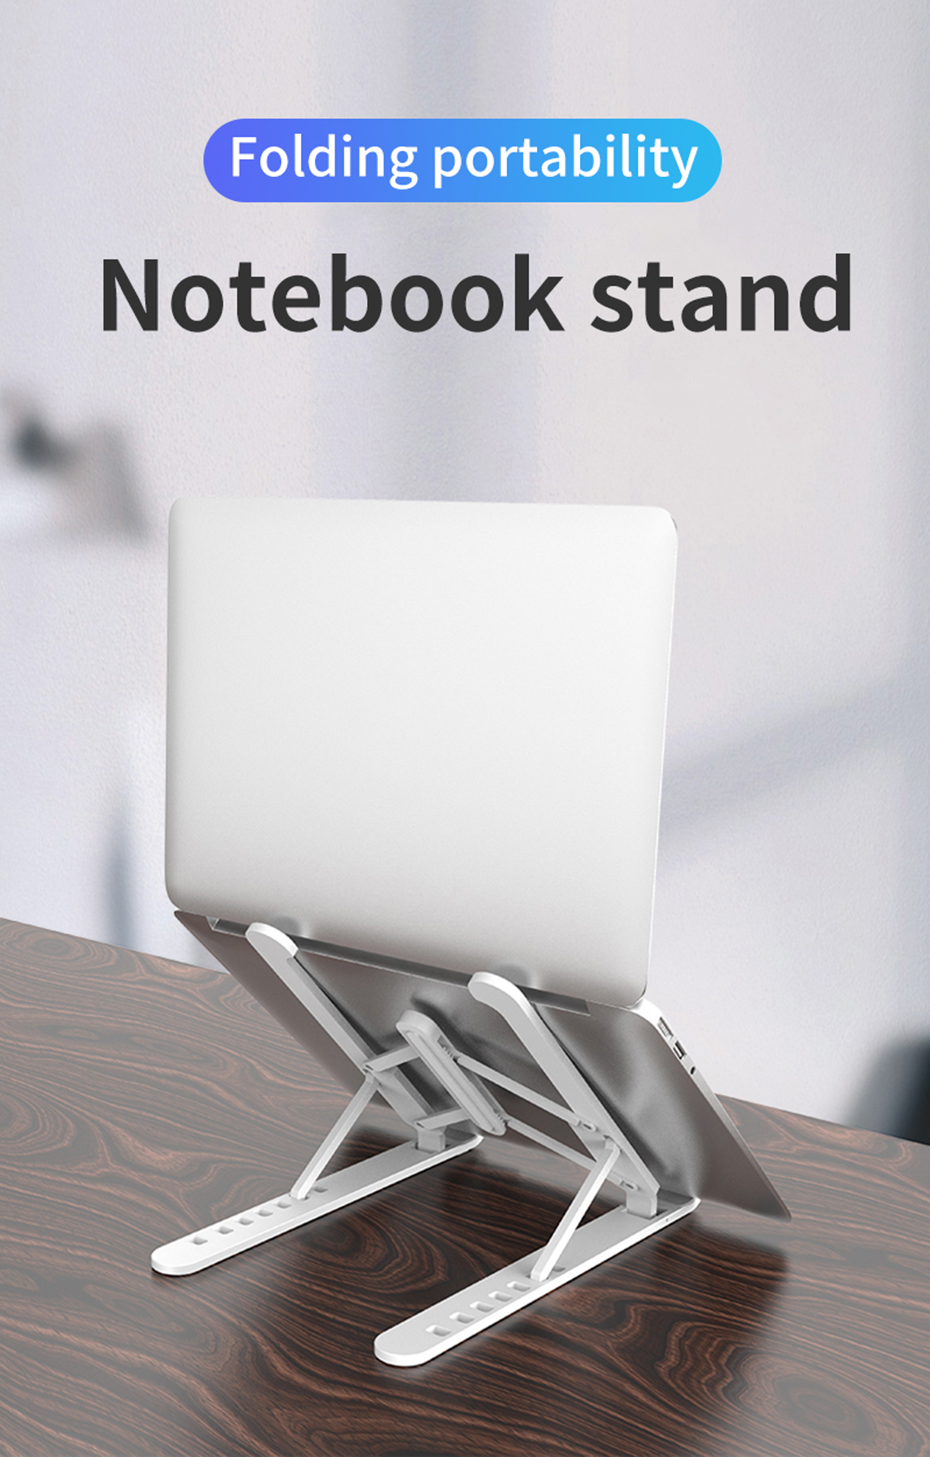 Portable Foldable Computer Notebook Black Base Para Support Cooling Bracket Riser Soporte Holder Laptop Stand for Lap Top